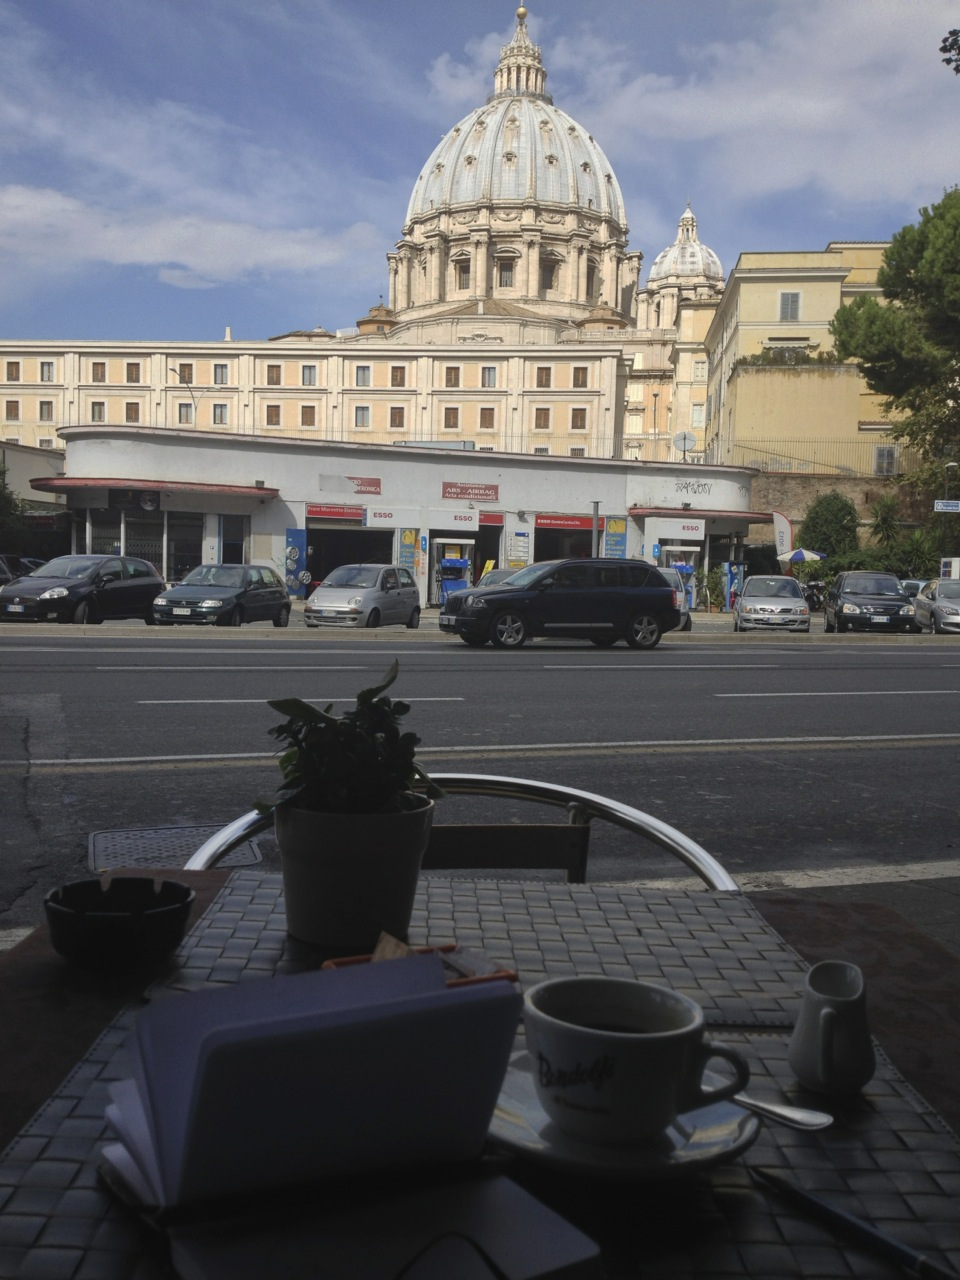 Americano at the Vatican